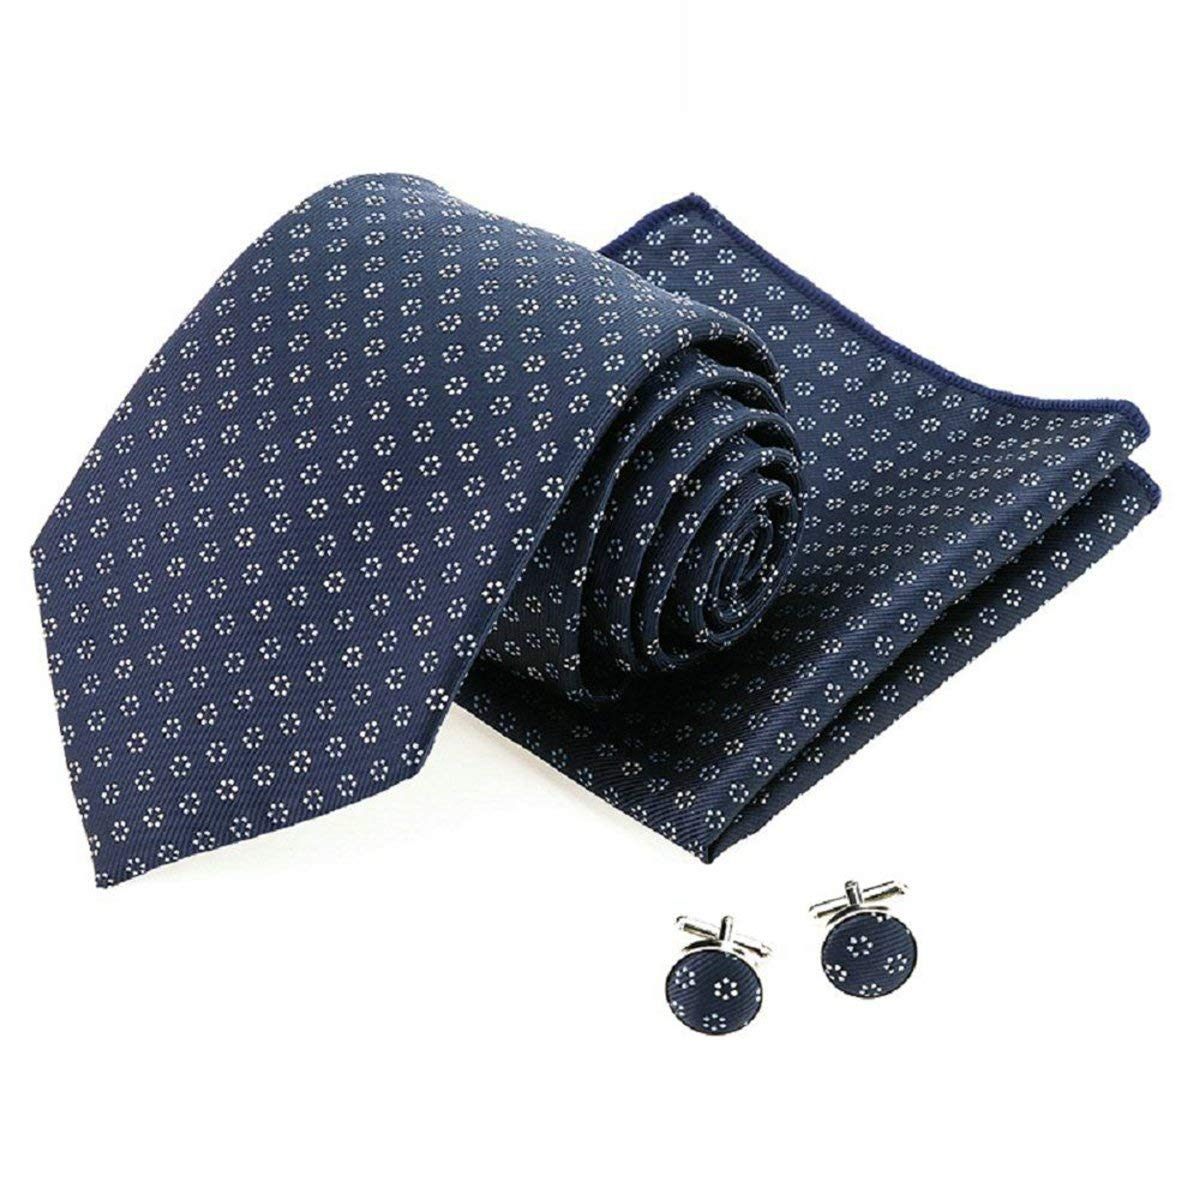 470c2d3e2ff Get Quotations · PinkBTFY Mens Classic Business Hanky 8.5cm Neck Ties Cuff  Links Sets Pocket Square Jacquard Wedding